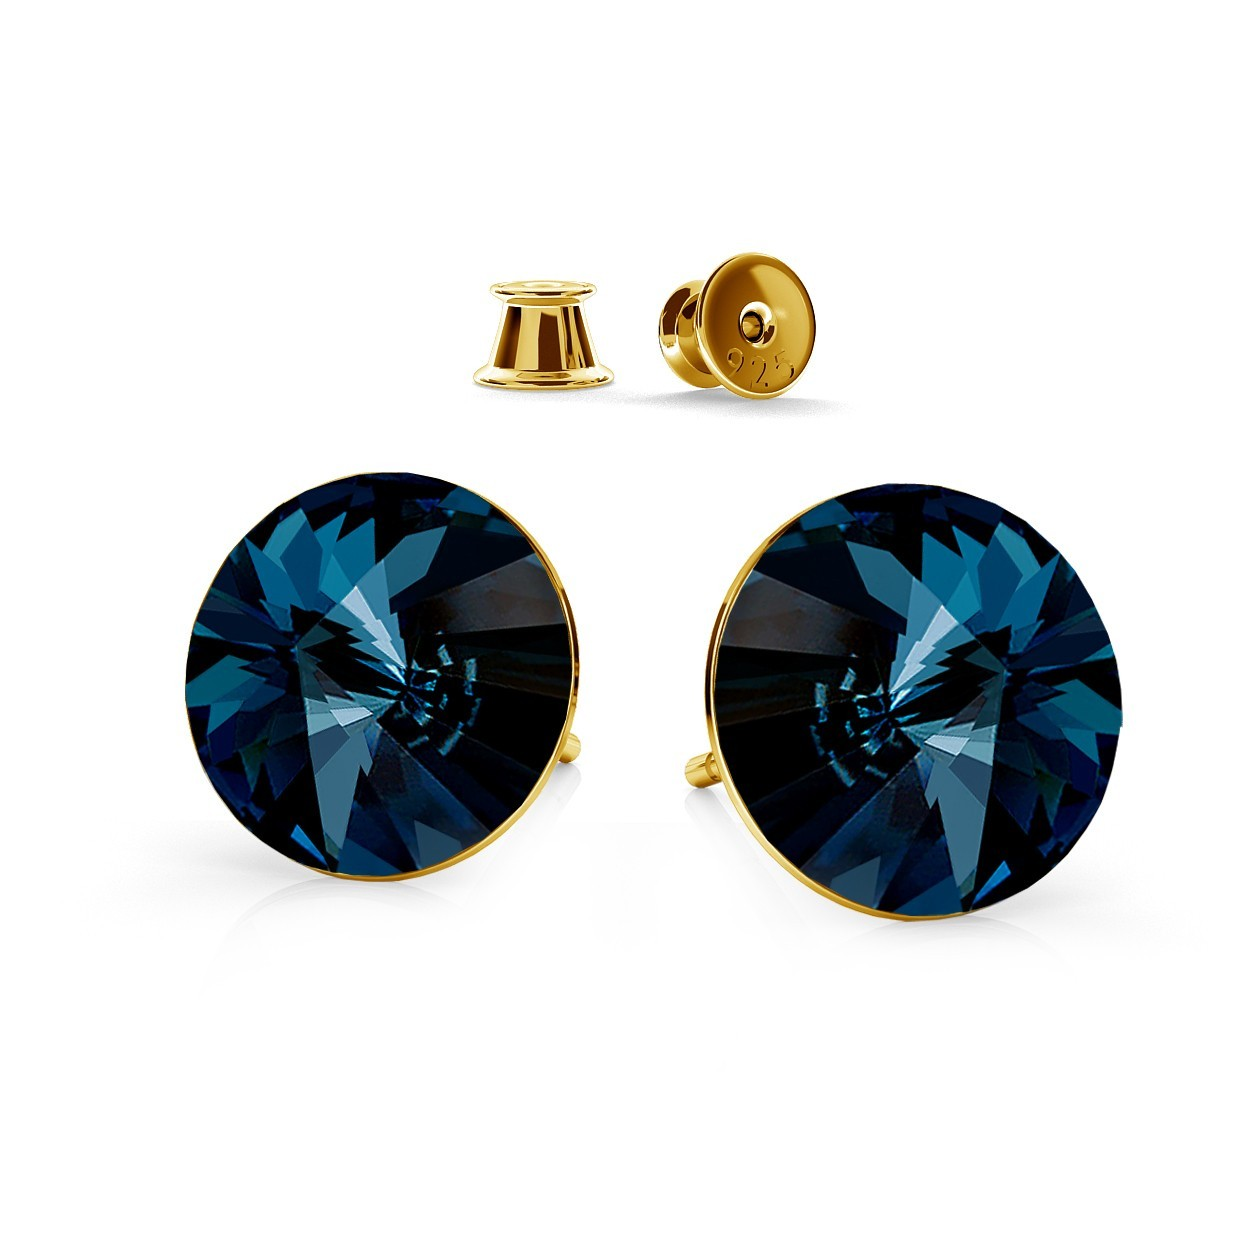 RIVOLI 8MM POST EARRINGS, SWAROVSKI